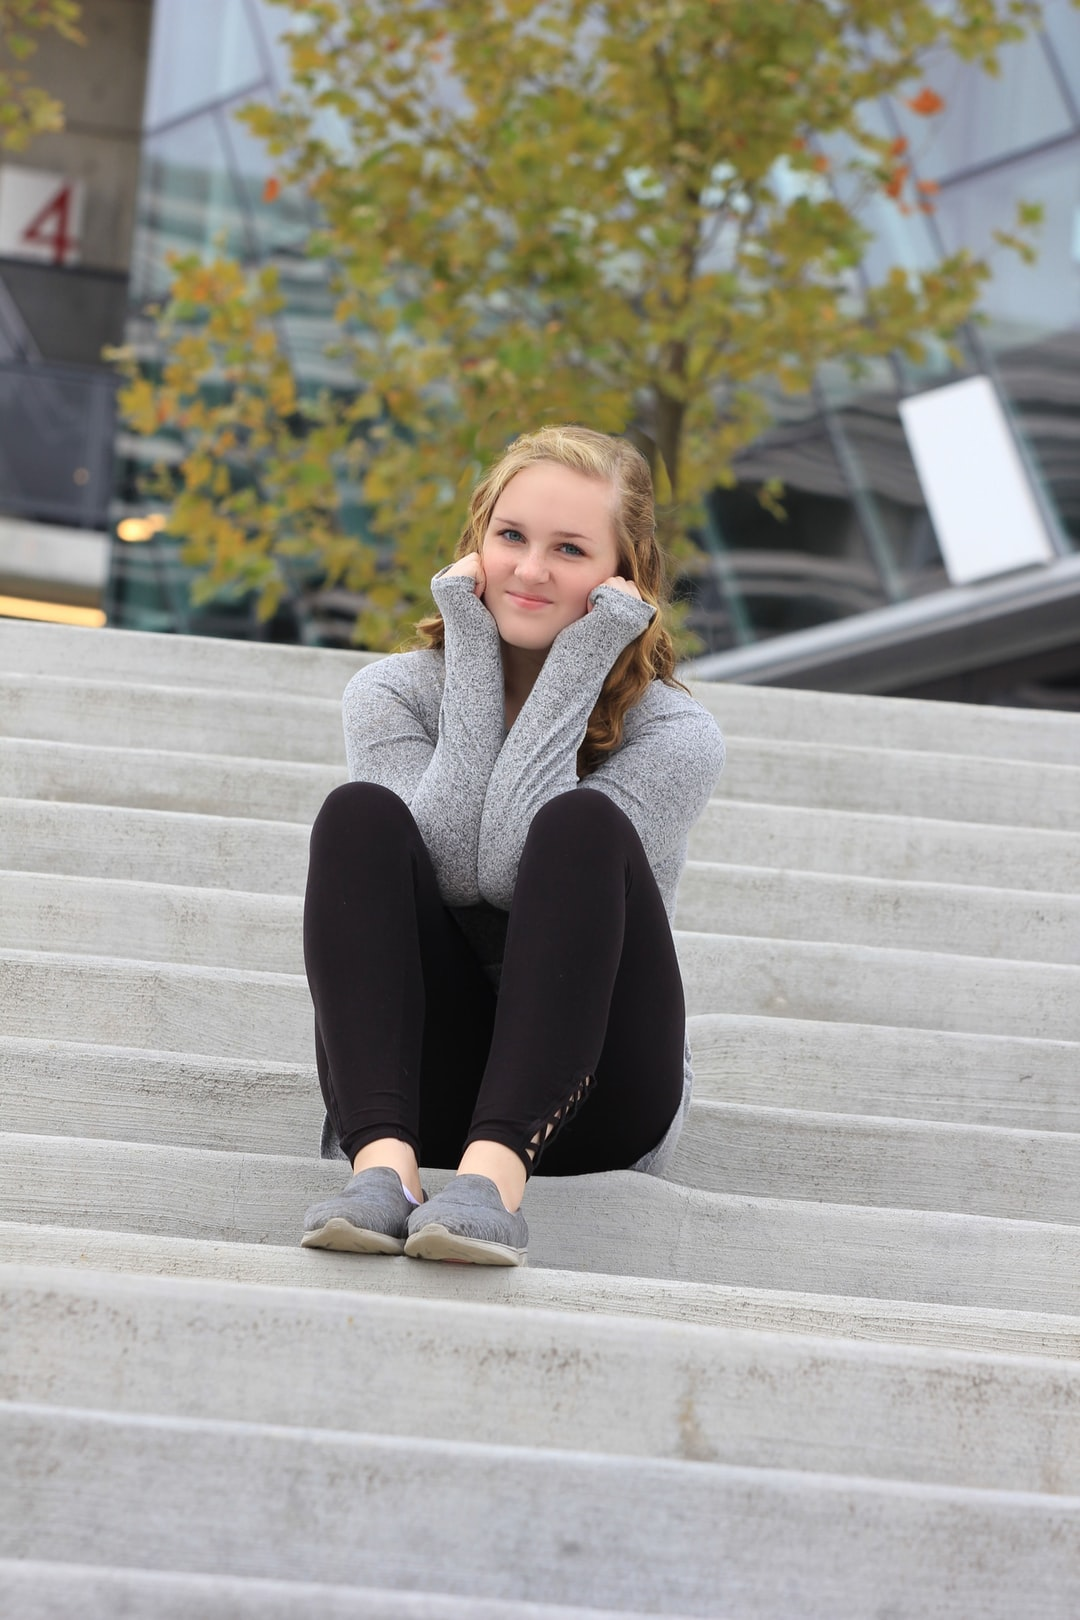 A girl poses on concrete steps in a grey sweater.